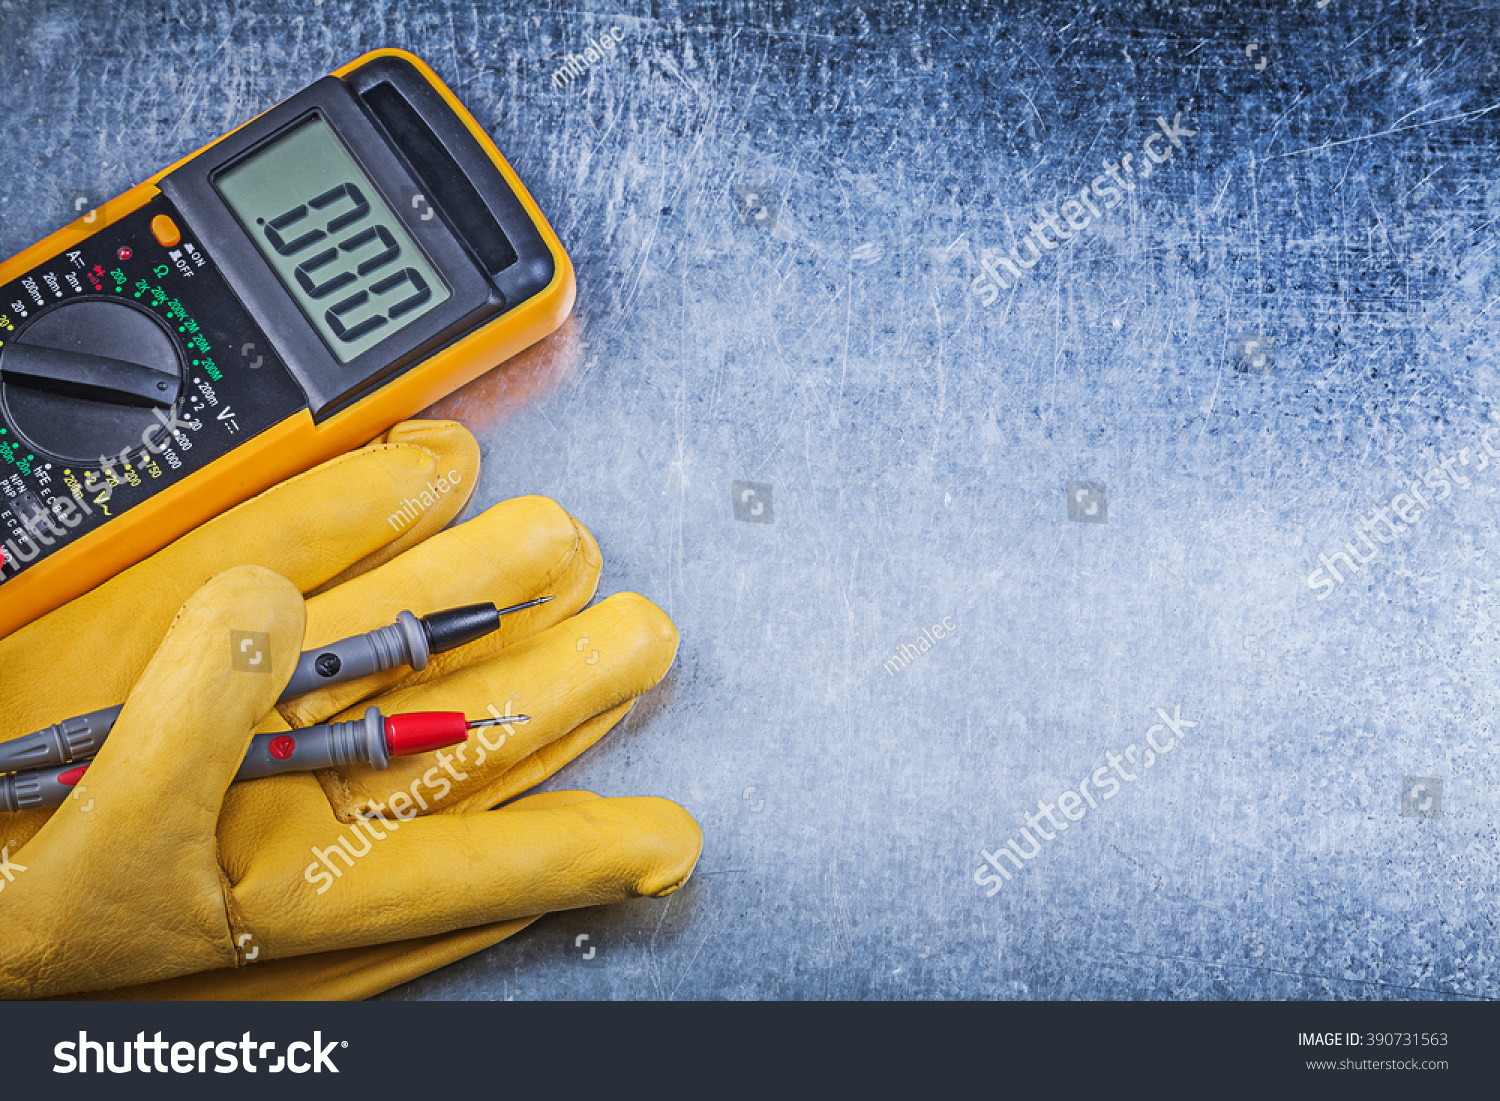 Electrical Glove Tester : Digital electric tester safety gloves on stock photo